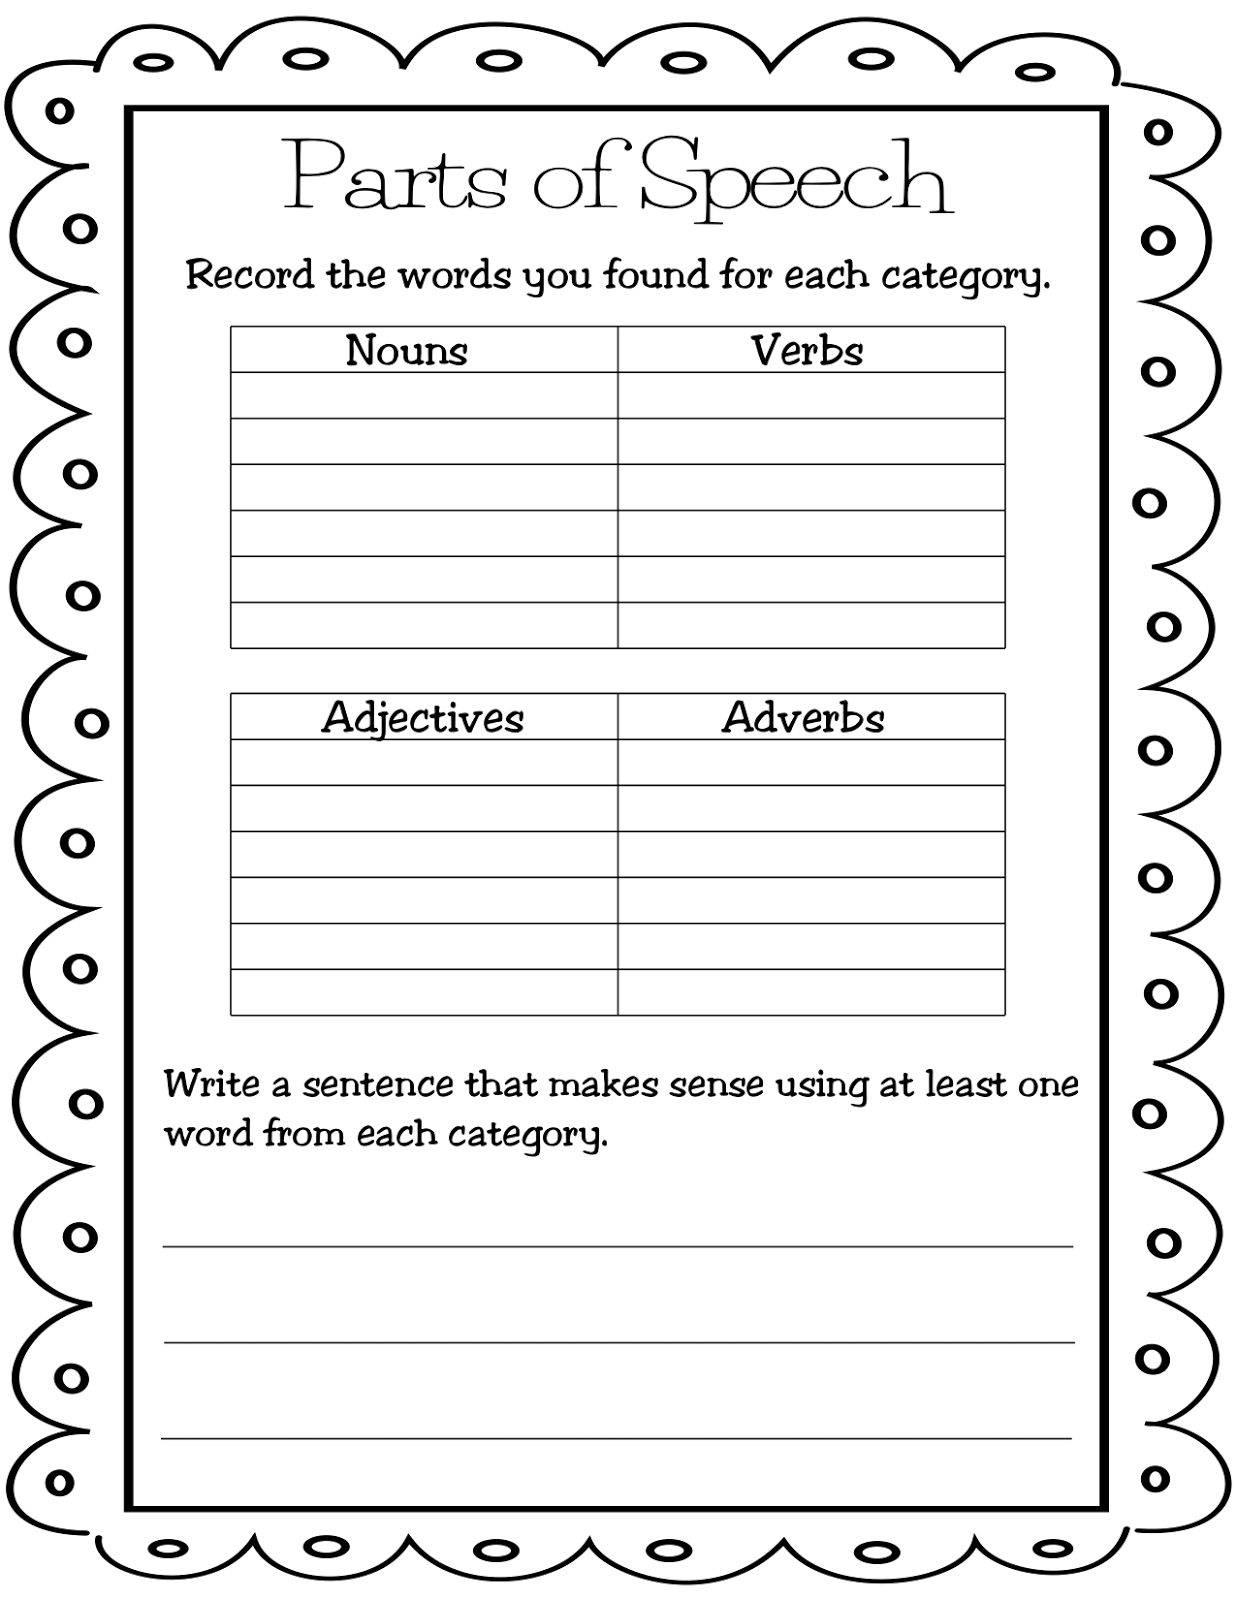 Worksheets Noun Verb Adjective Adverb Worksheet verbs adjectives adverbs worksheets delibertad nouns delibertad